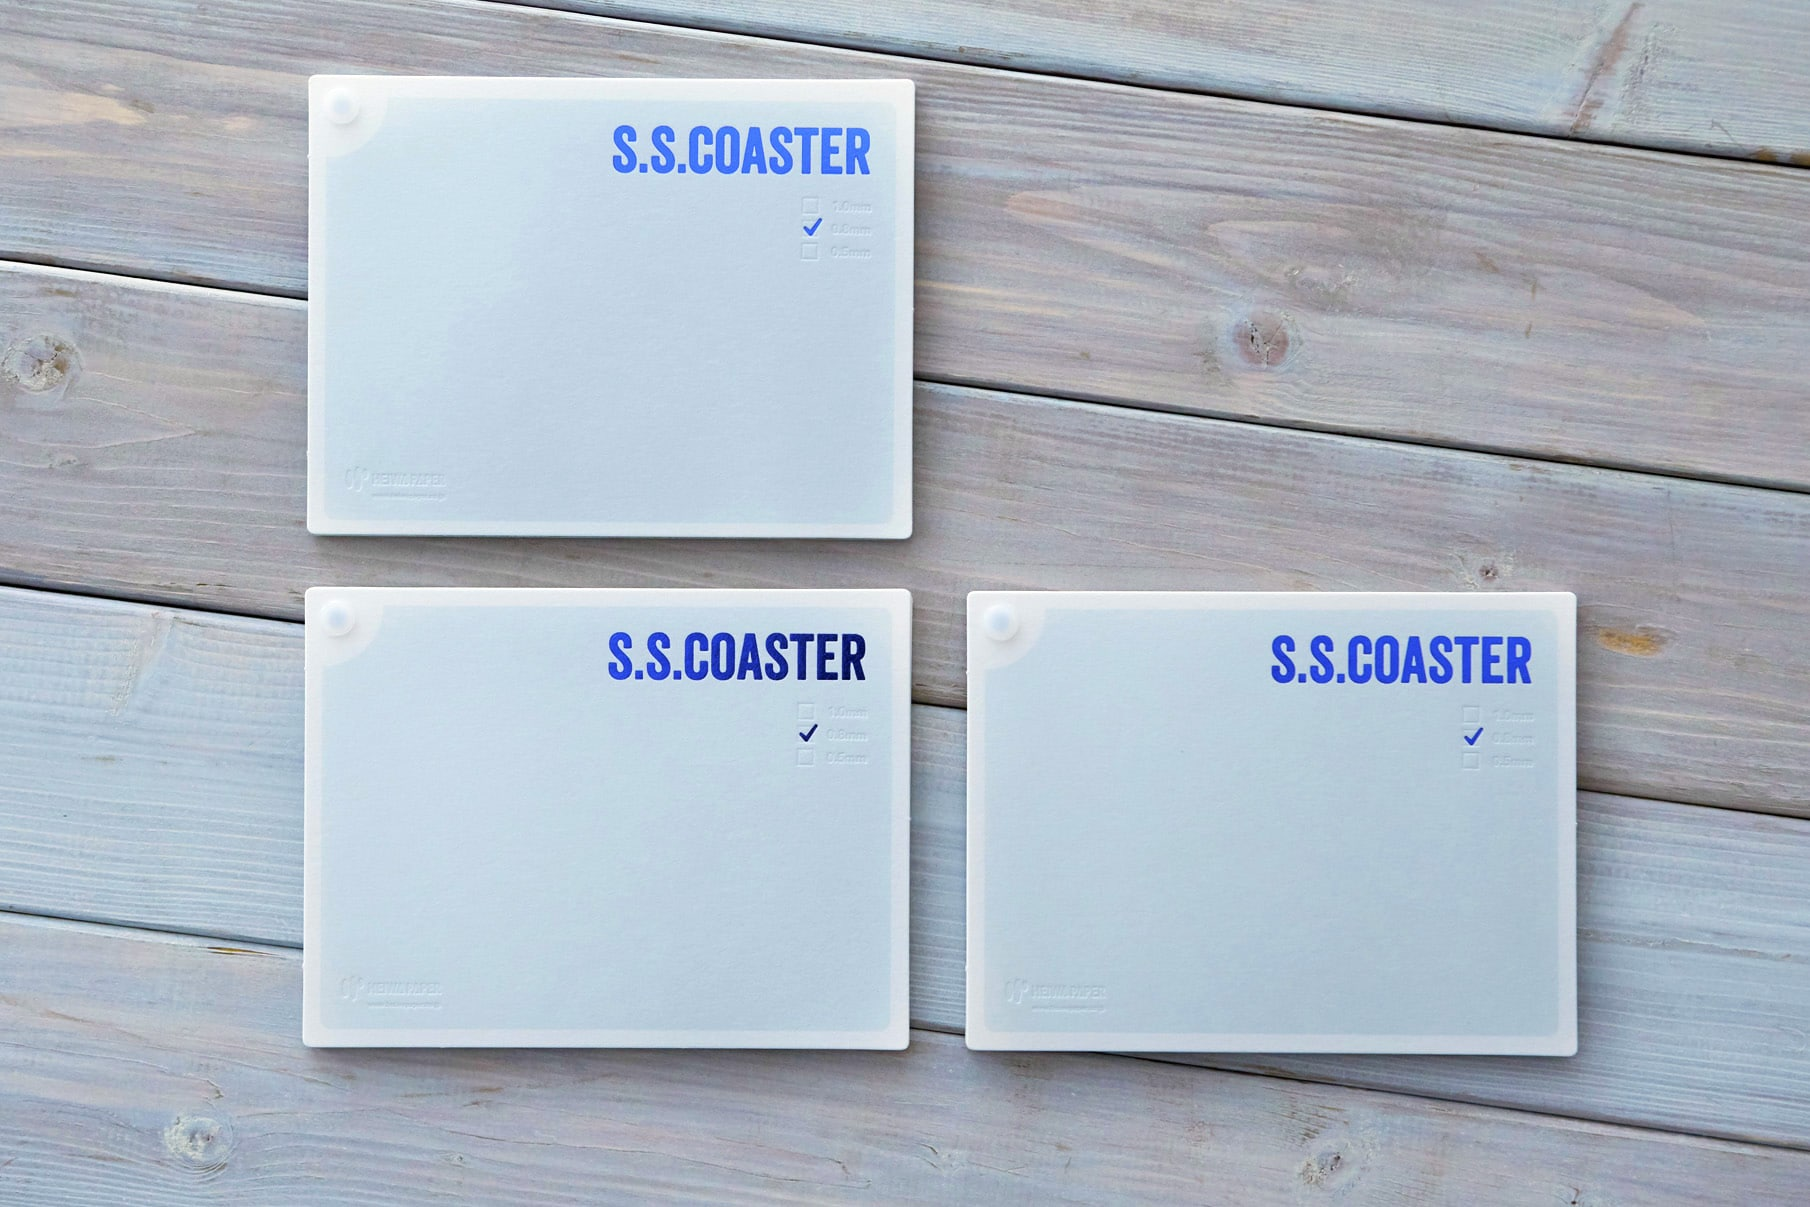 S.S.Coaster - Promotion Book 2